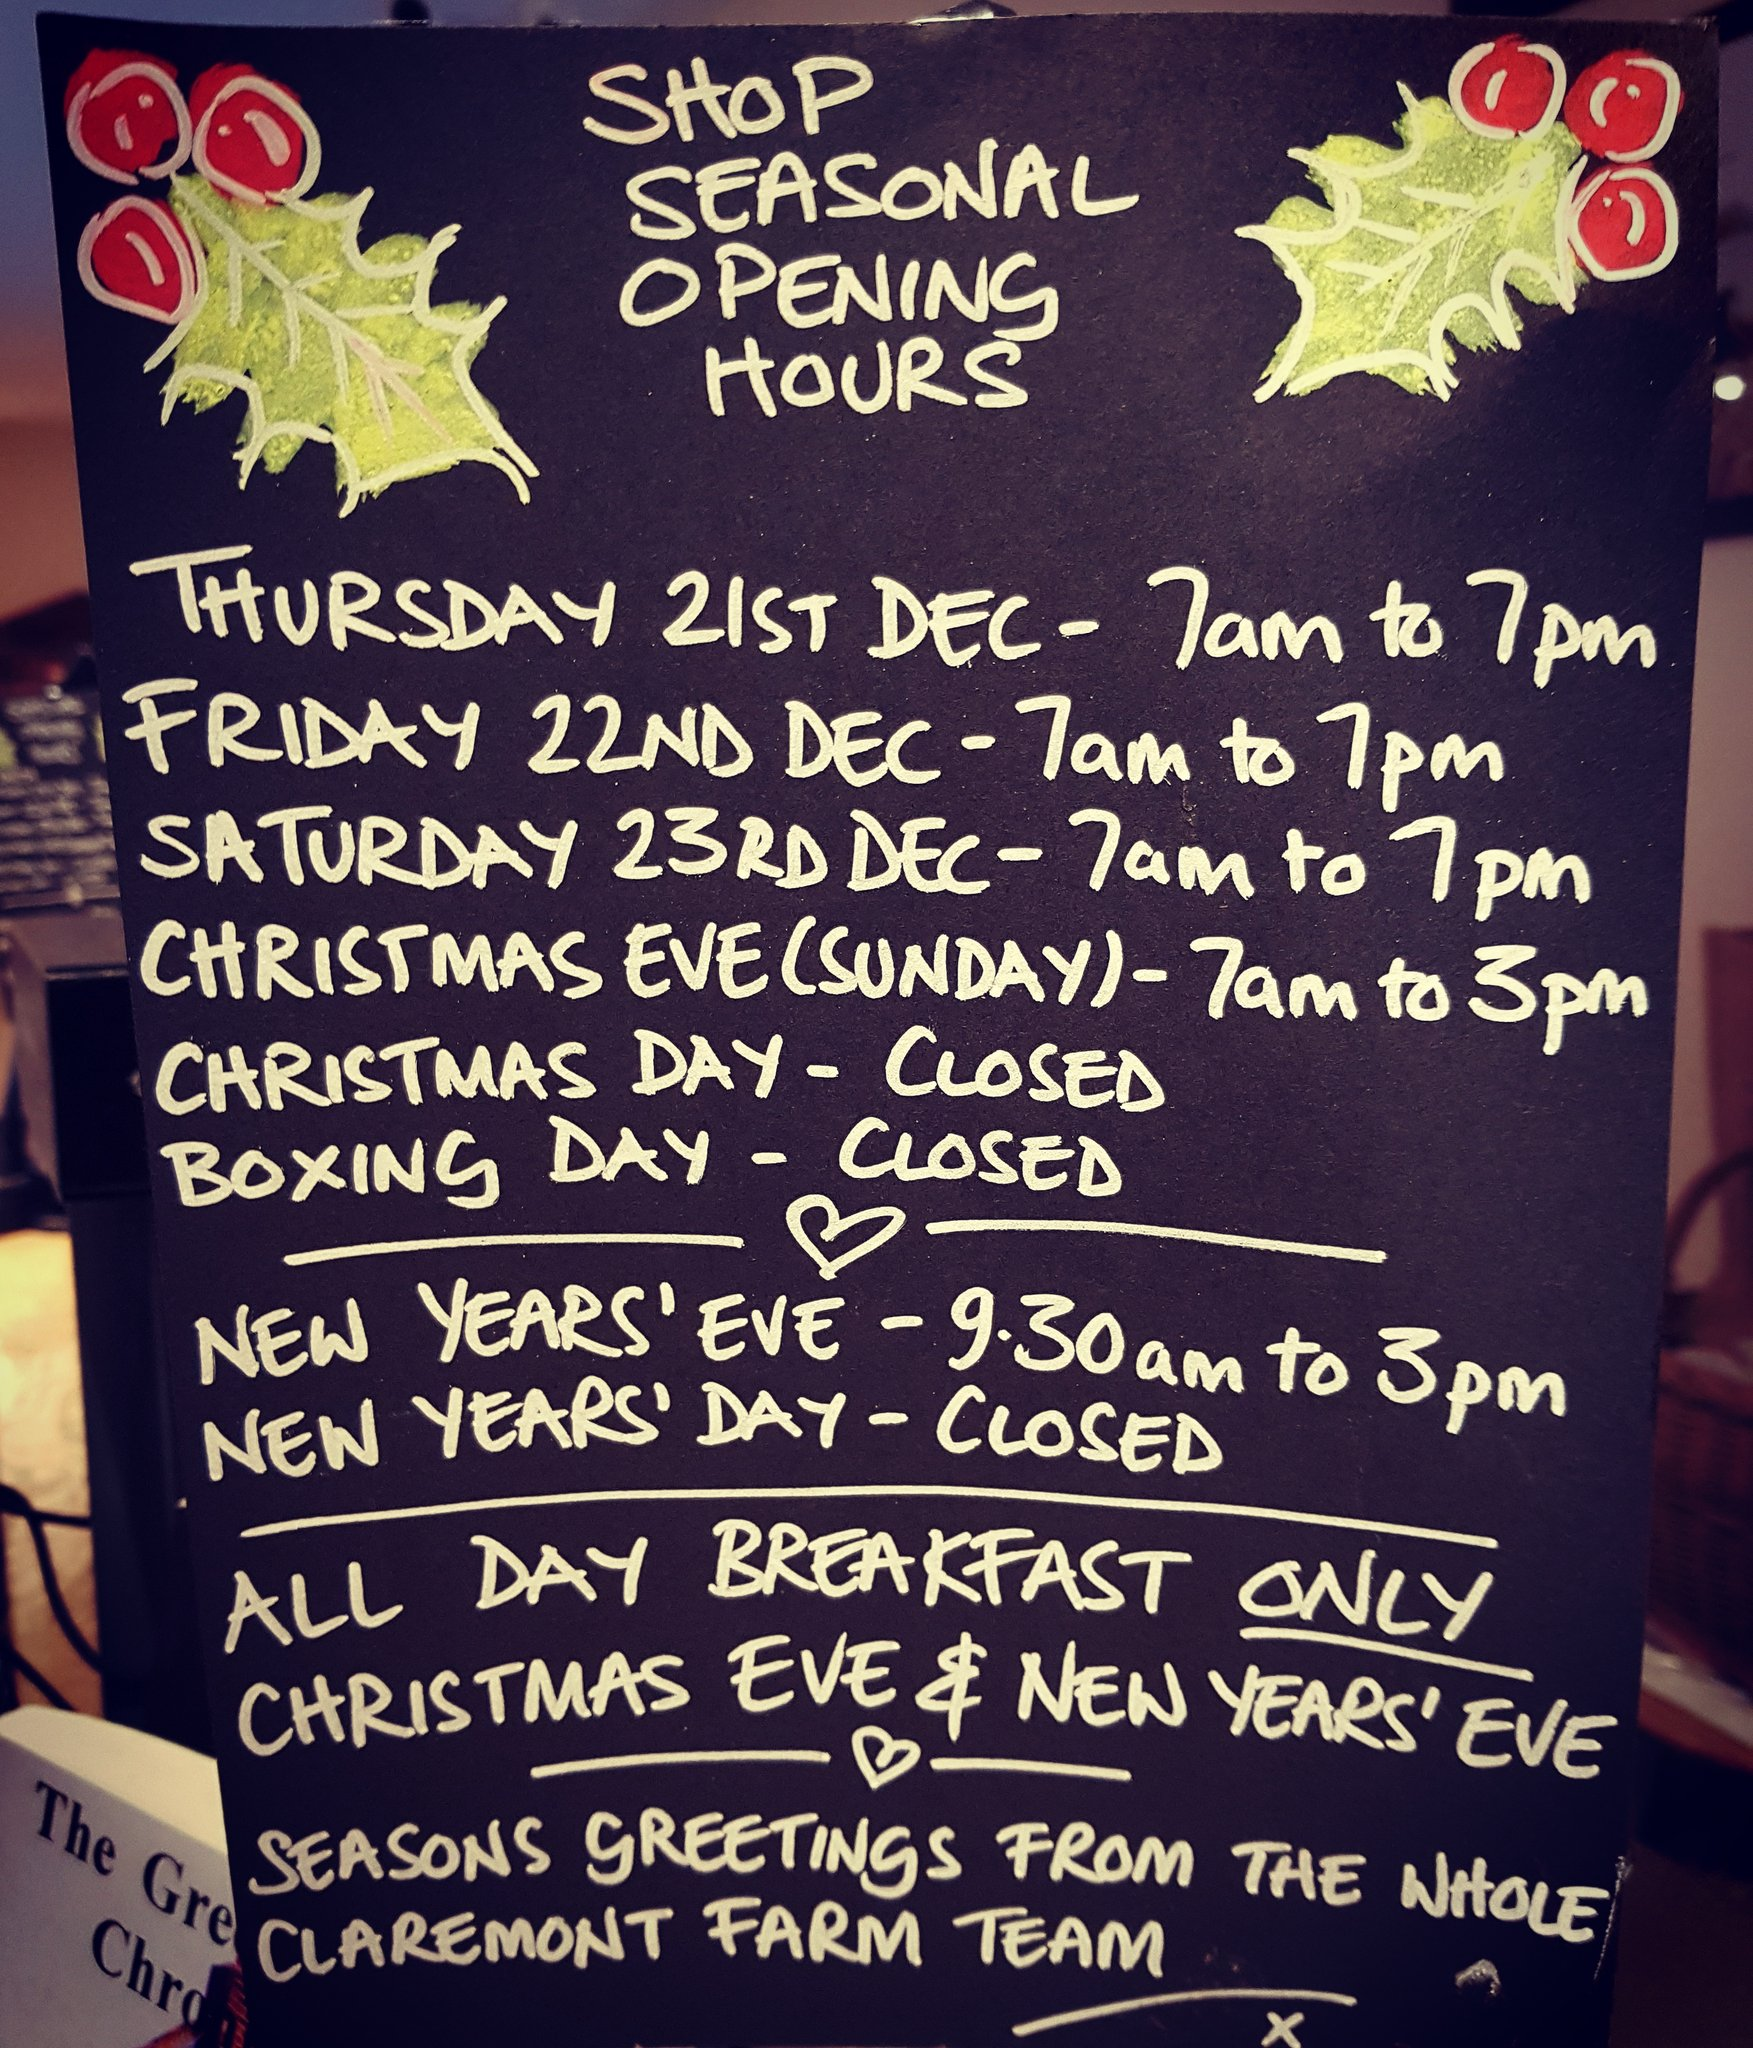 Claremont Farm On Twitter Our Seasonal Shop Opening Hours